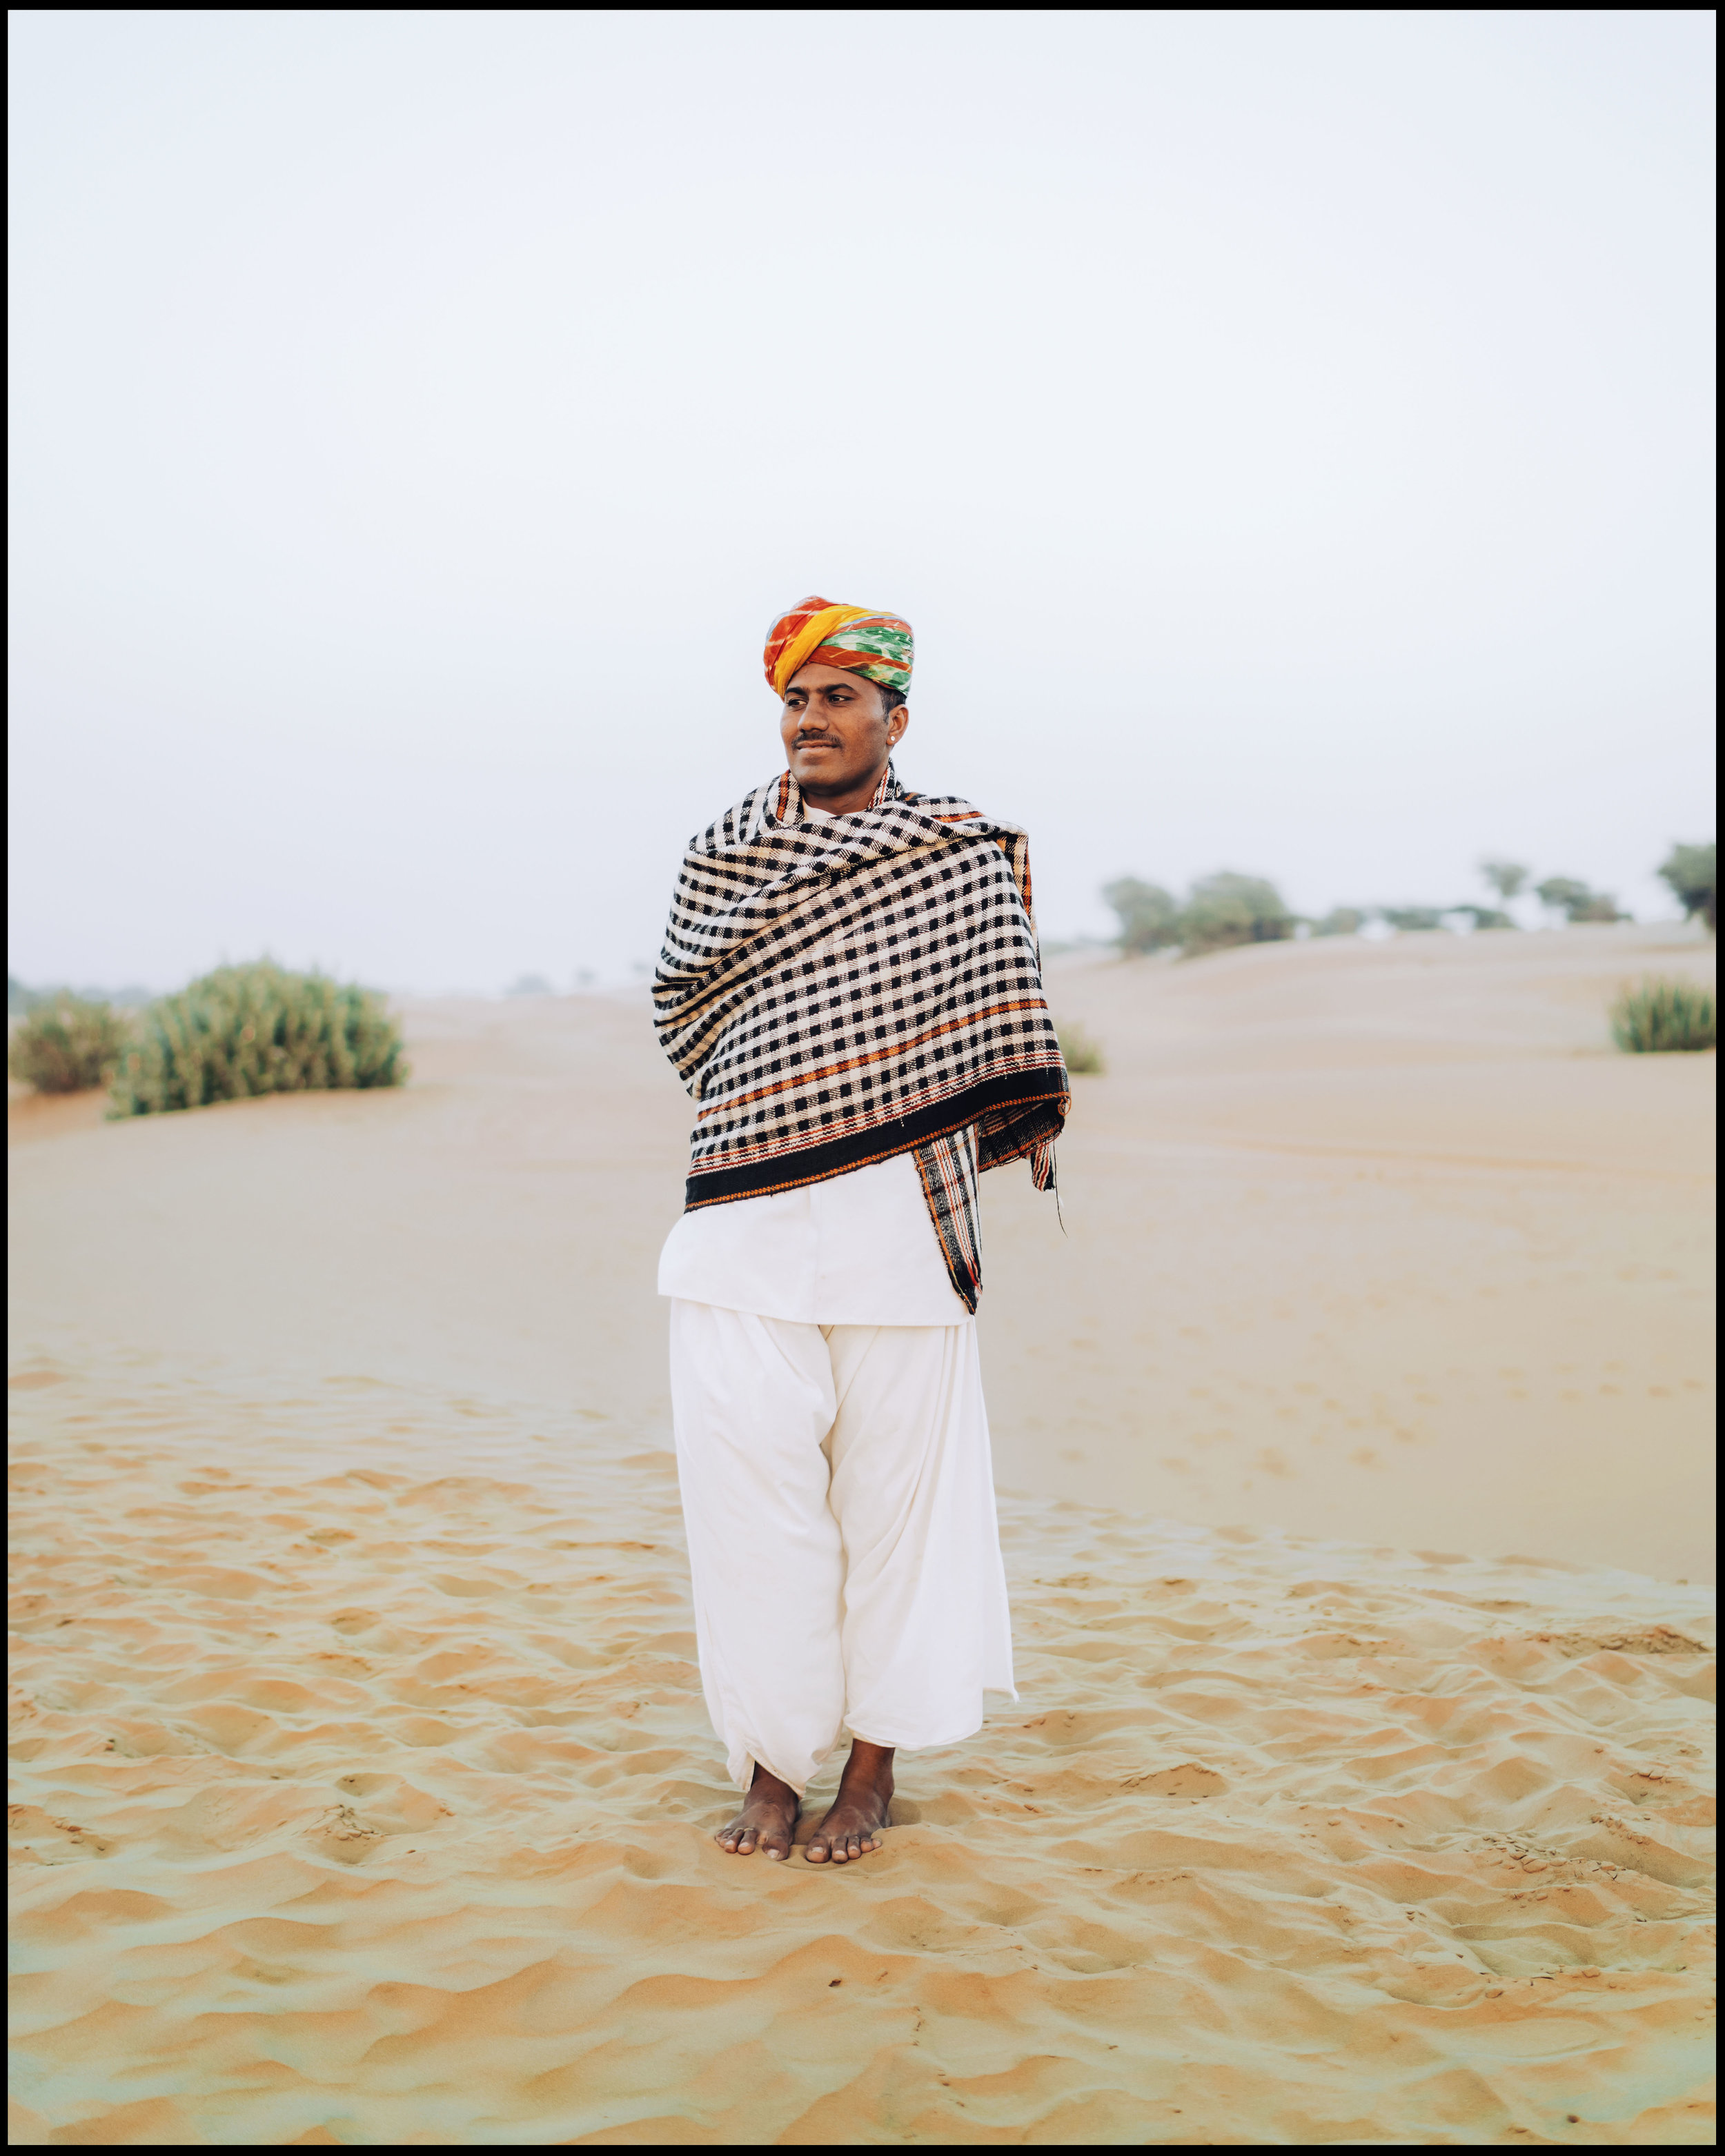 Man in Jaisalmer